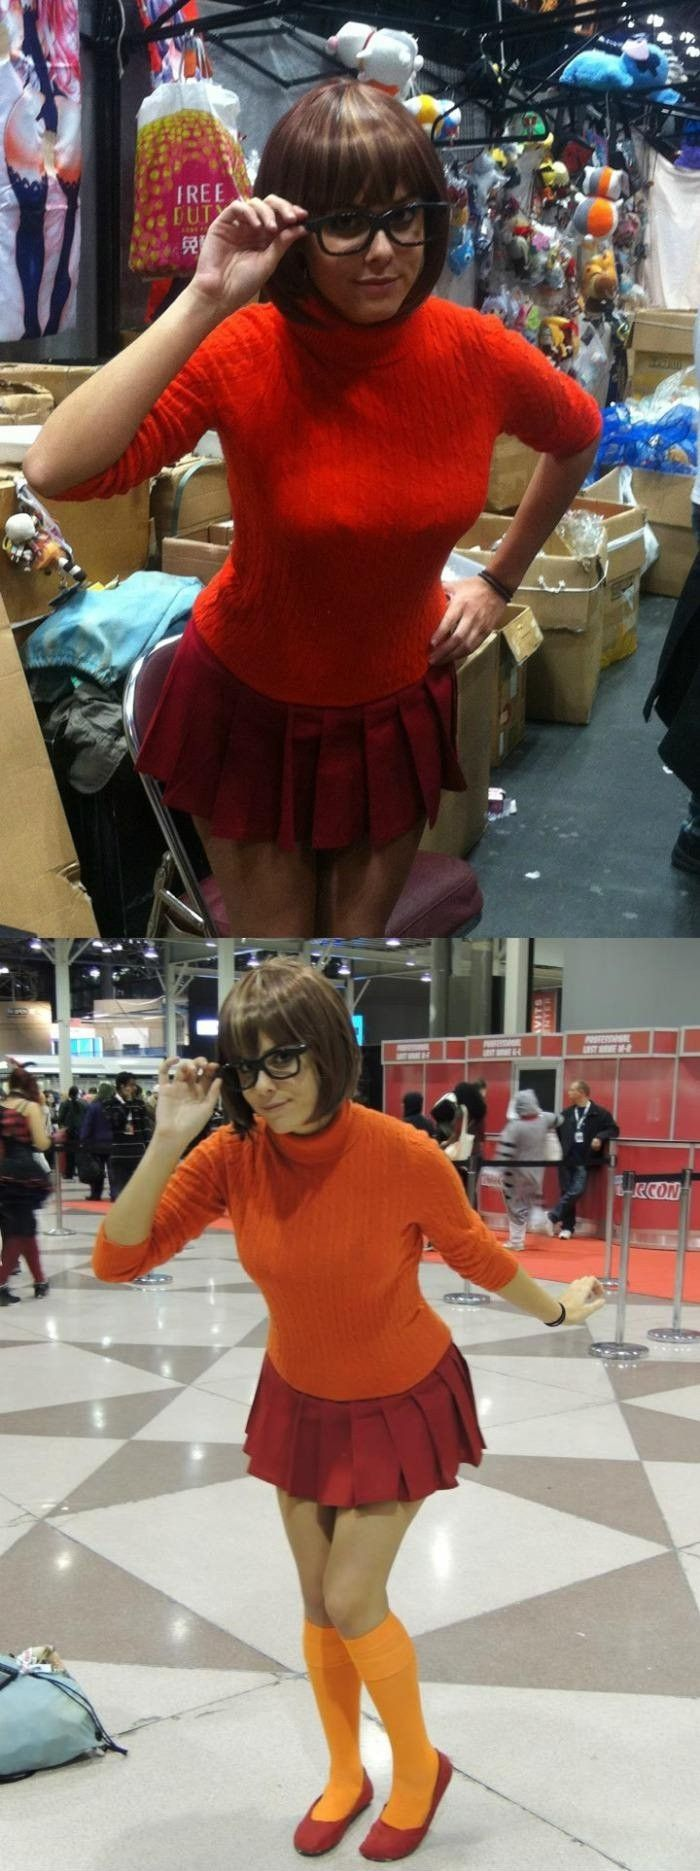 Velma. I love the skirt, I want it for everyday wear